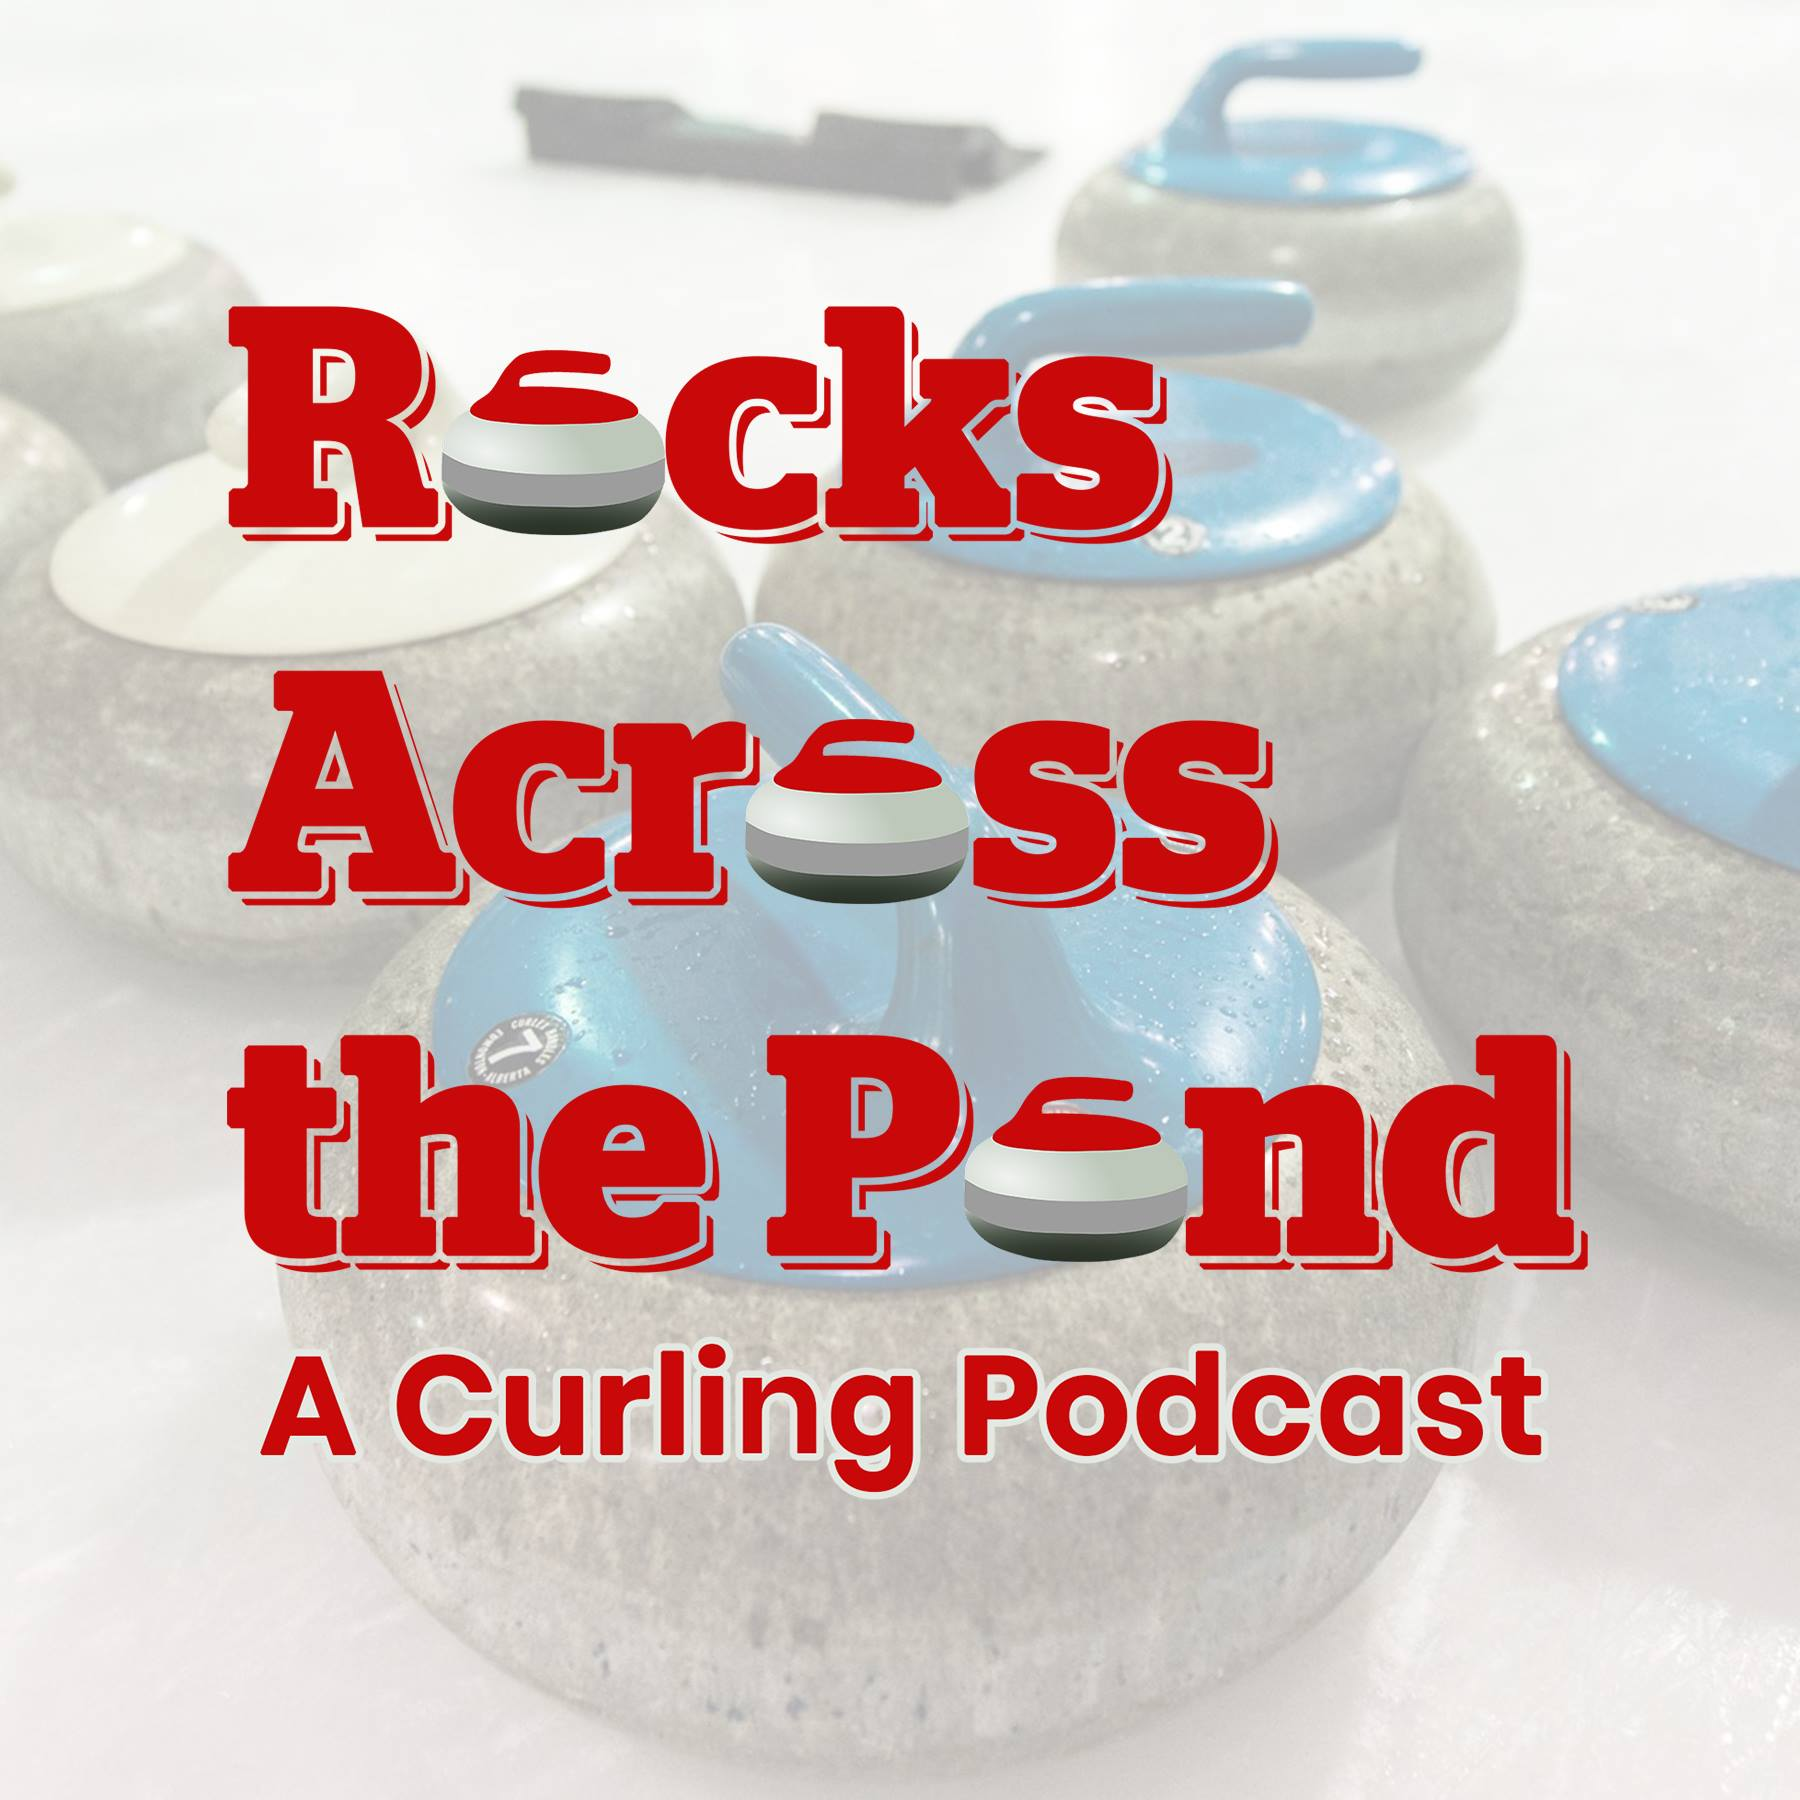 What Will Curling Look Like After COVID-19?